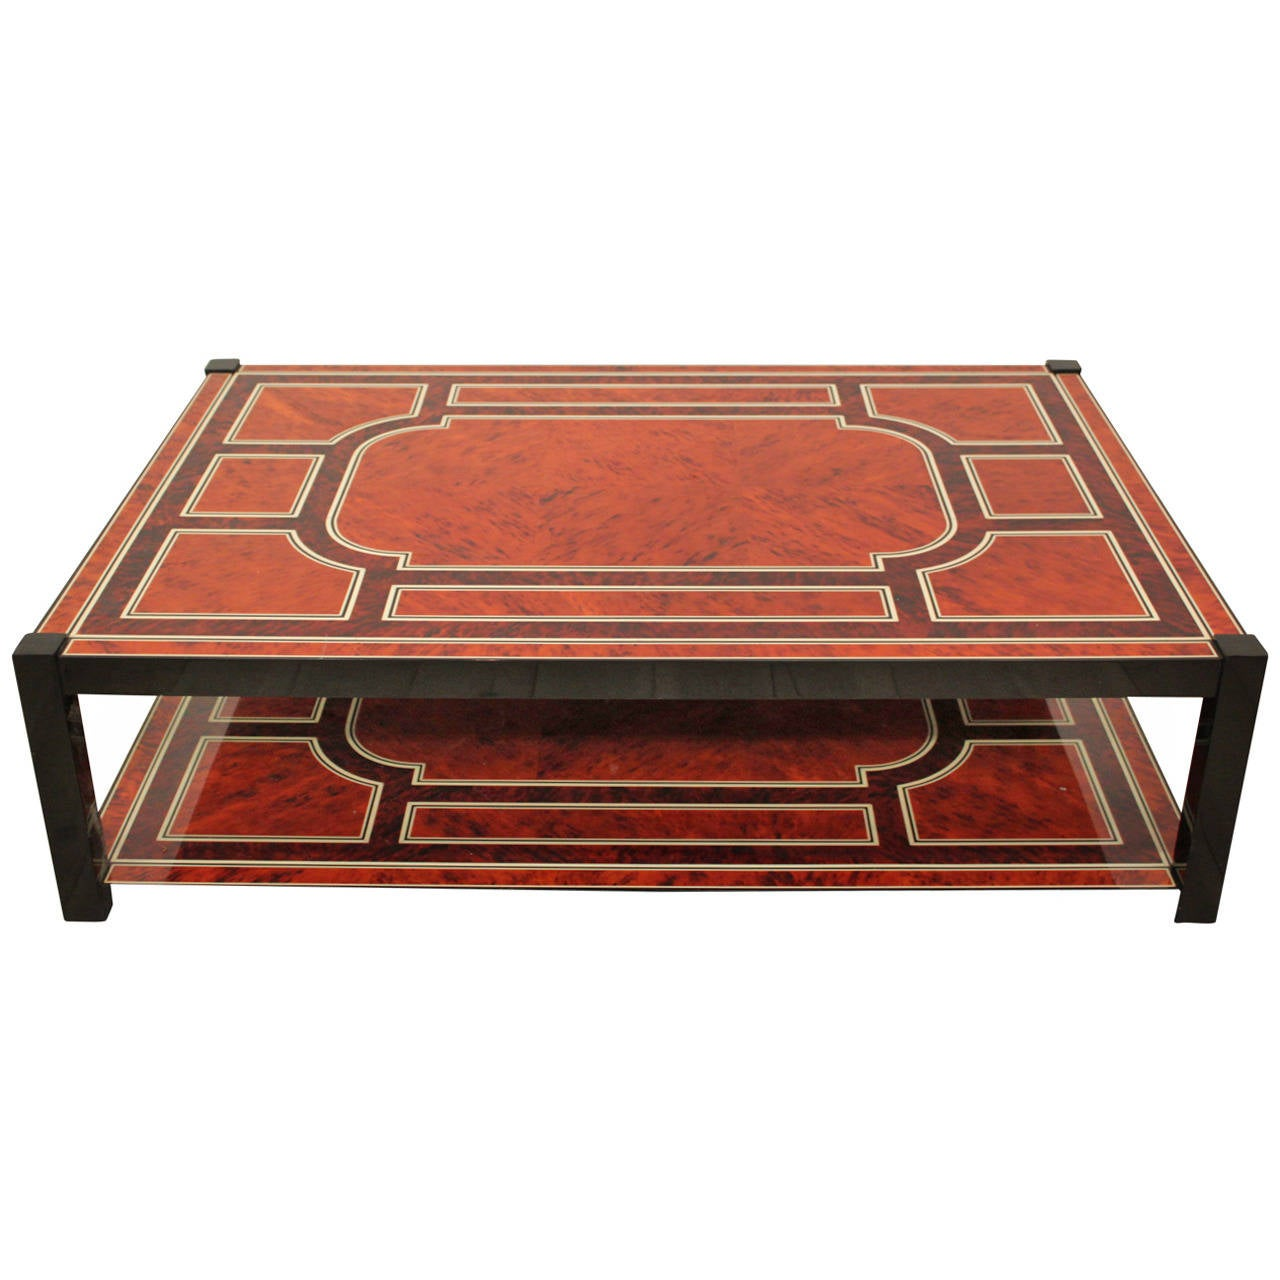 1970 Beautiful Large Coffee Table At 1stdibs